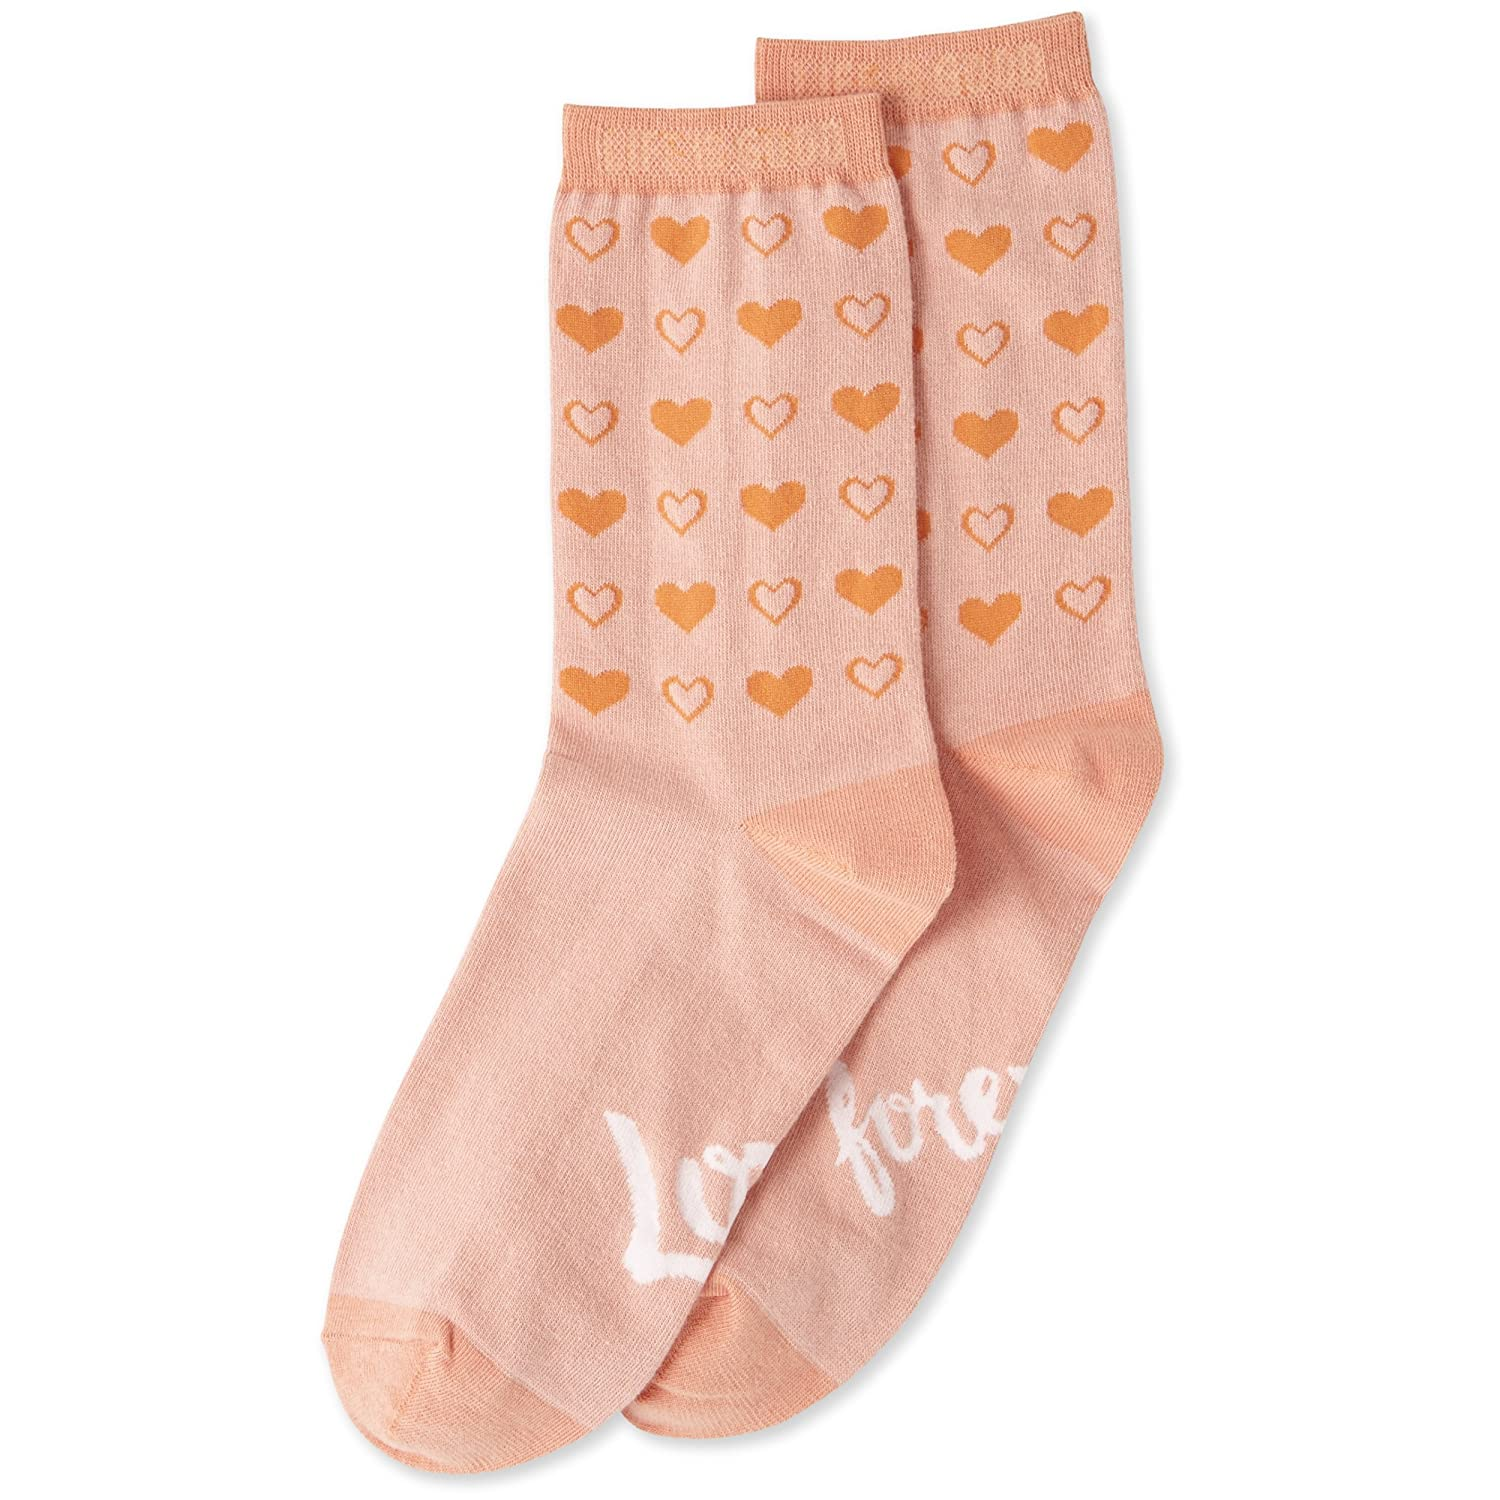 Life is Good Womens Cress Love Forever Socks Chalky Peach One Size The Life is good Company 50213